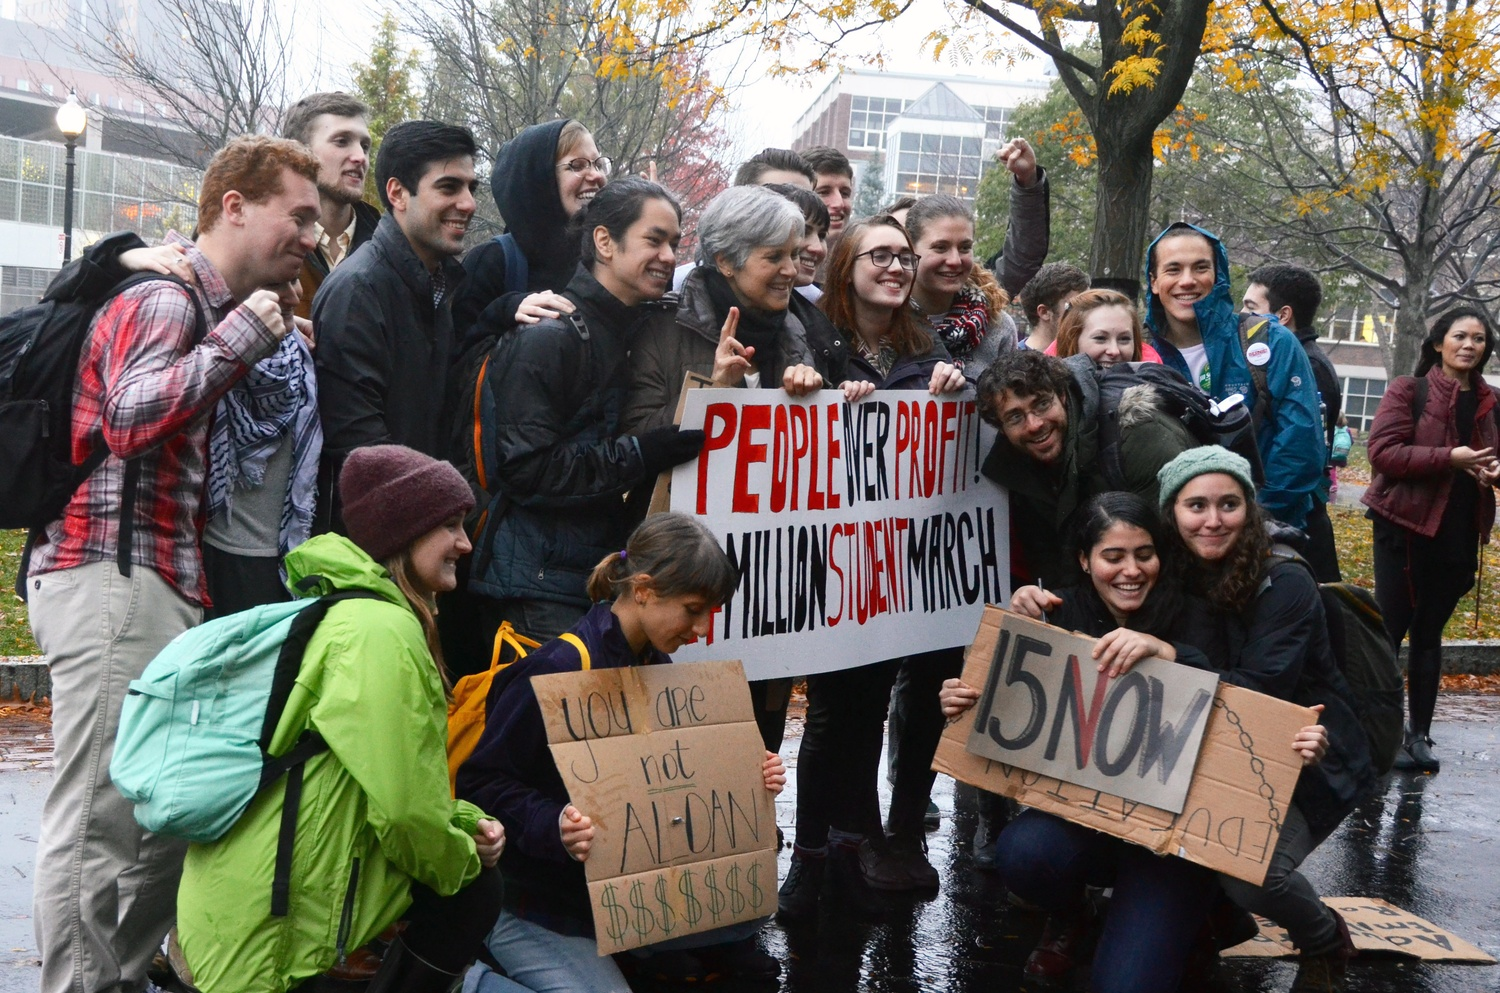 Presumptive Green Party presidential candidate Jill Stein '73 poses for a photo with students at Northeastern's Million Student March in October.